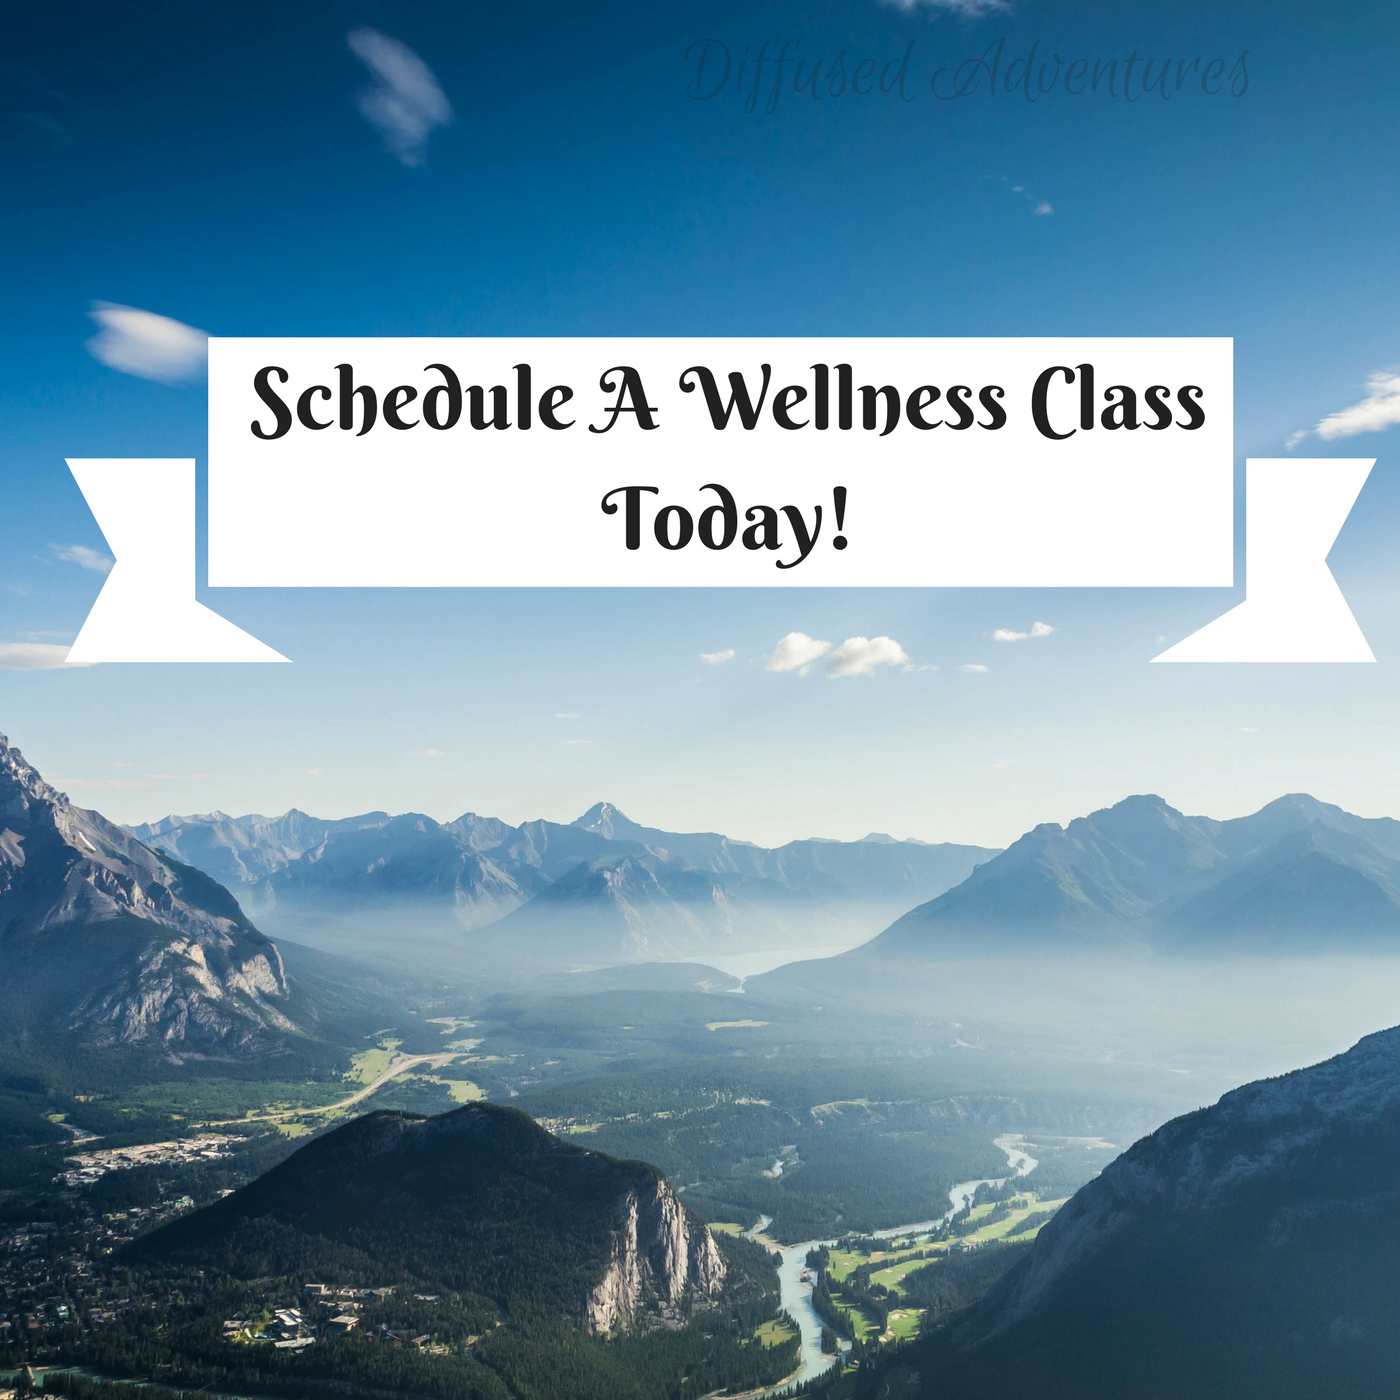 Schedule A Wellness Class Today